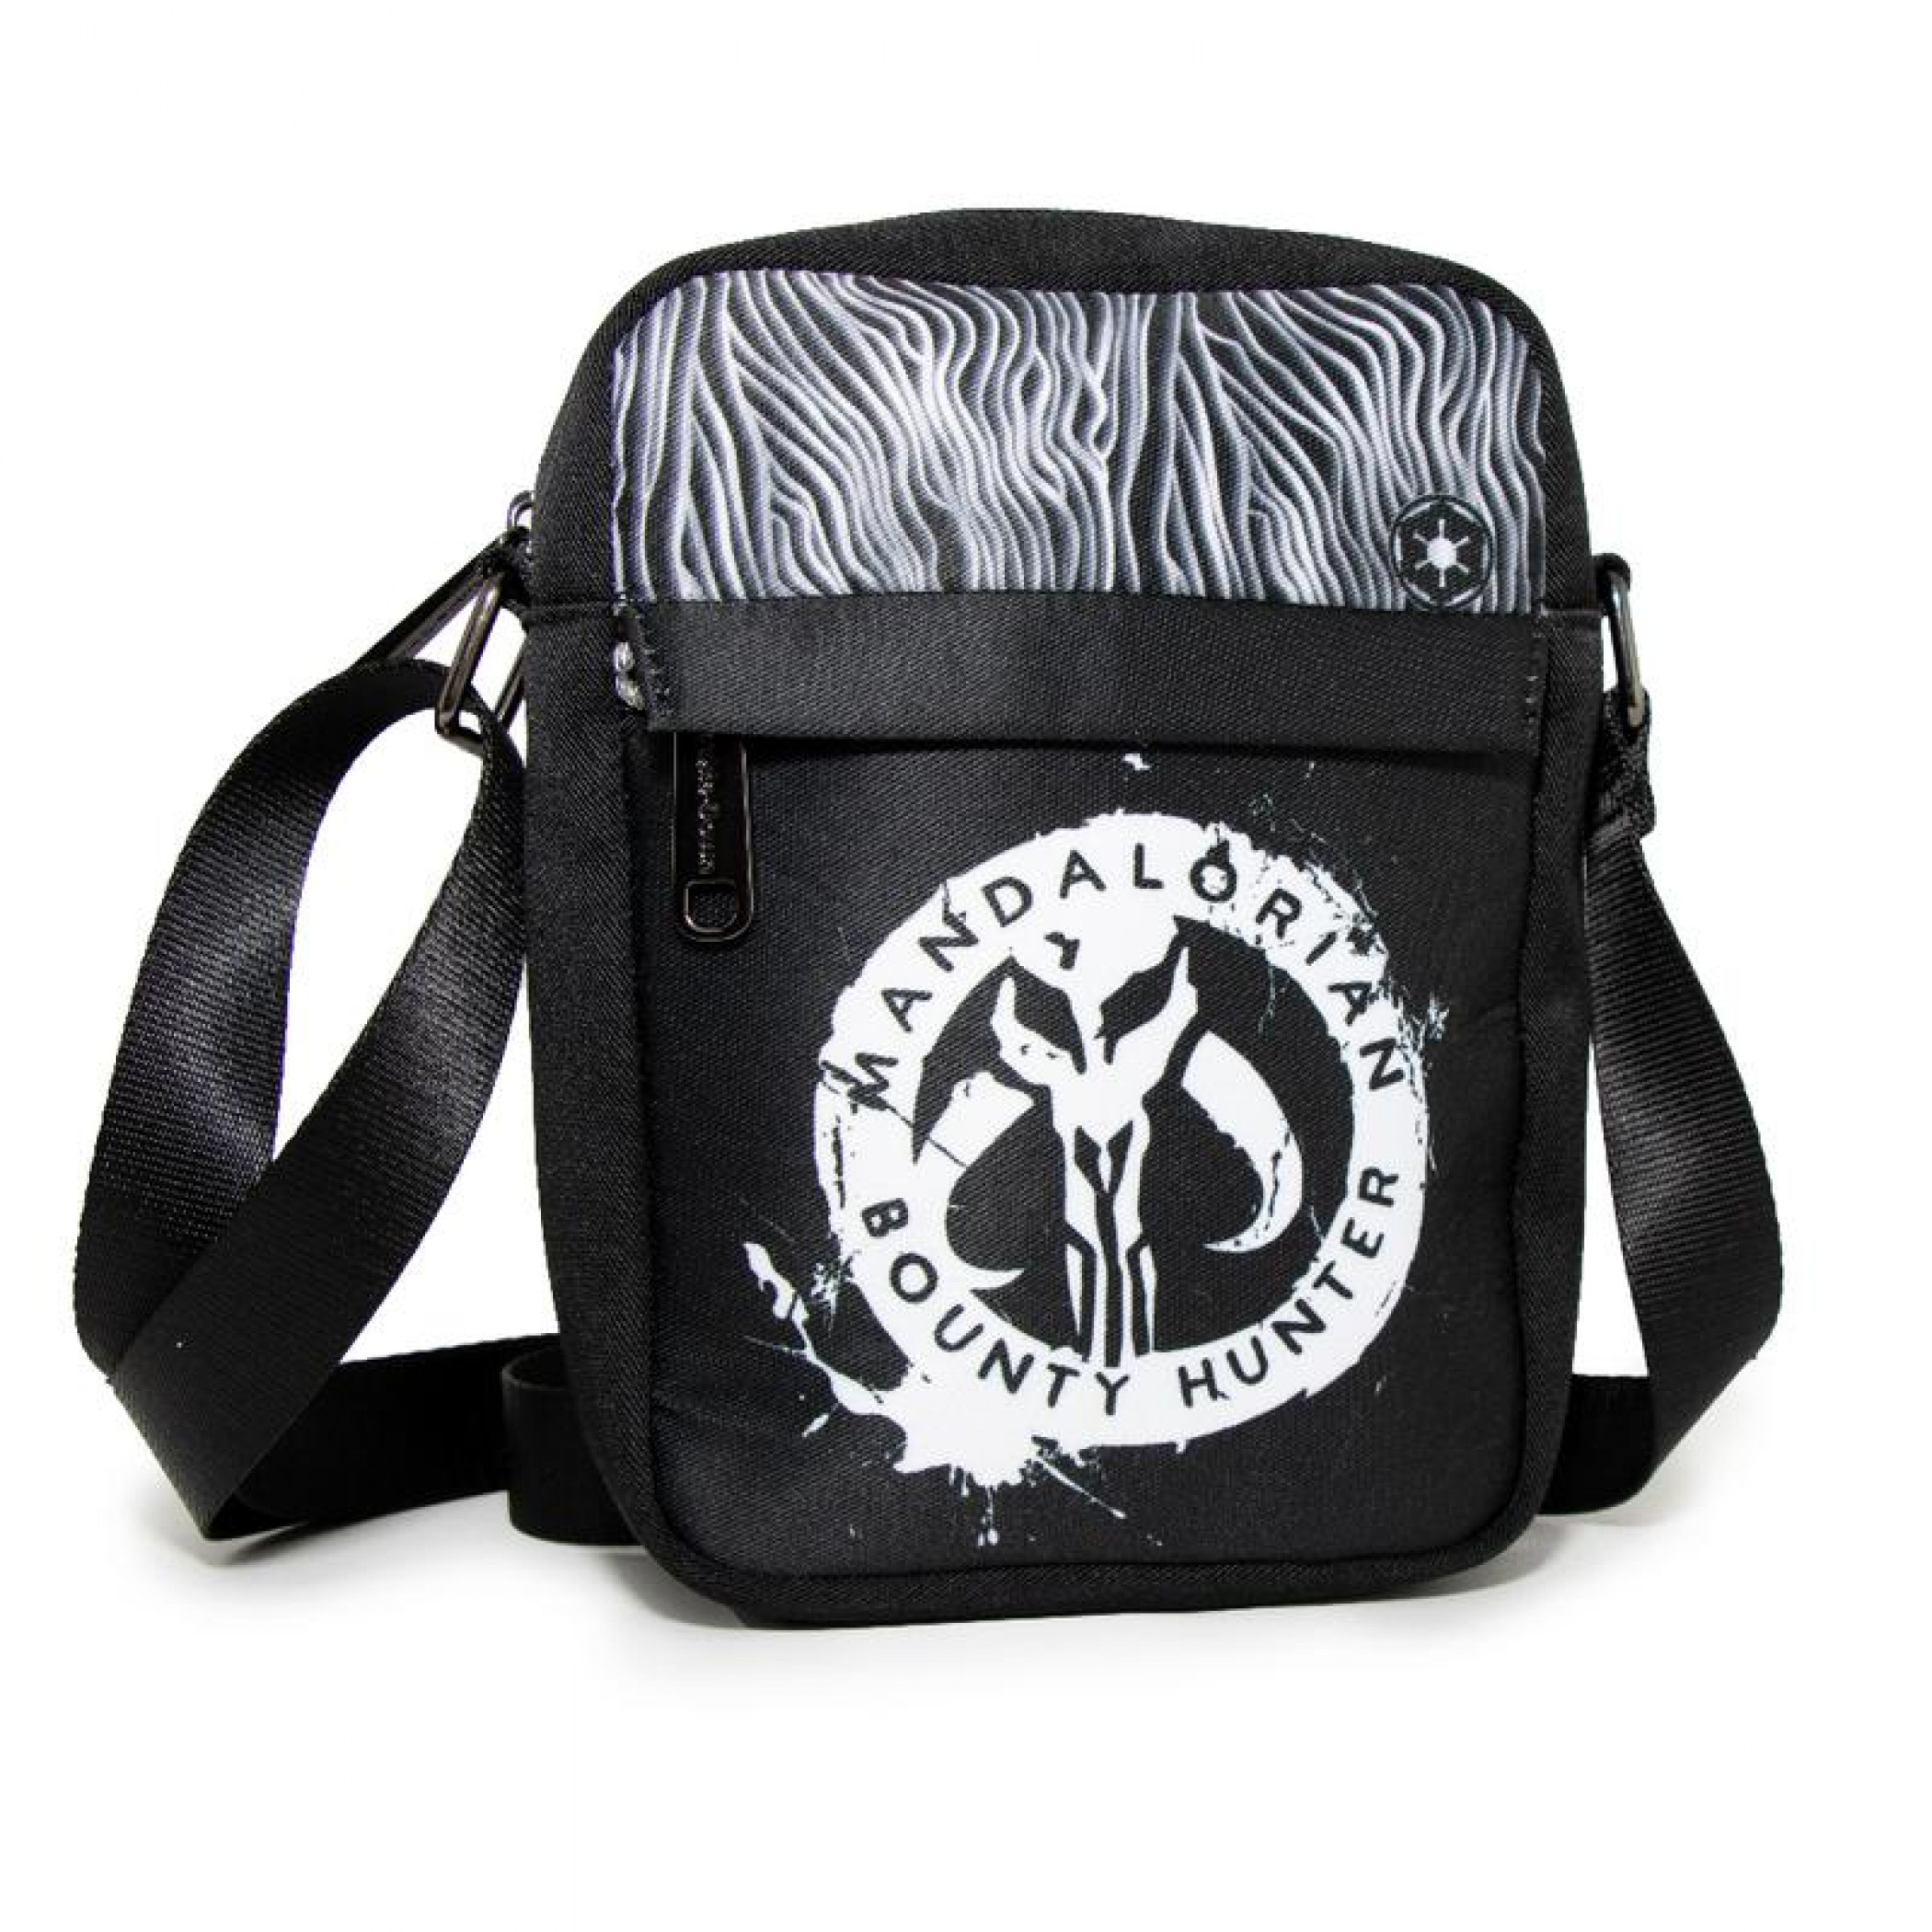 The Mandalorian Bounty Hunter Crossbody Women's Bag